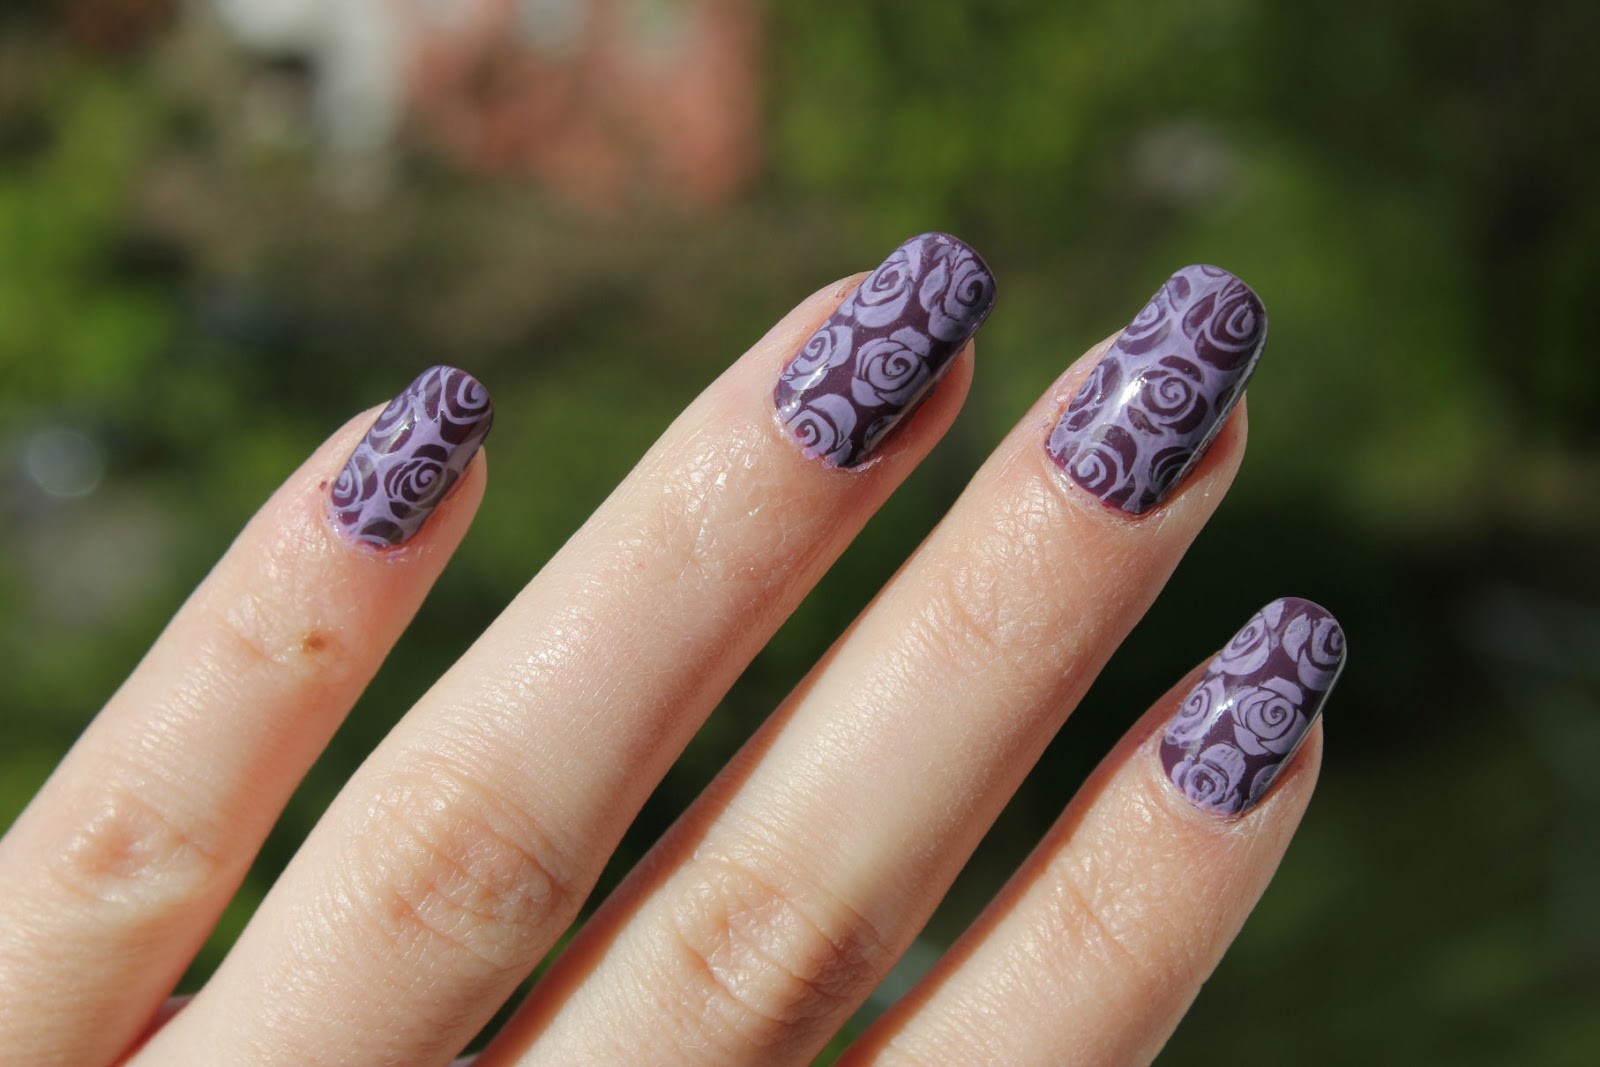 http://lacquediction.blogspot.de/2014/05/notd-purple-roses.html